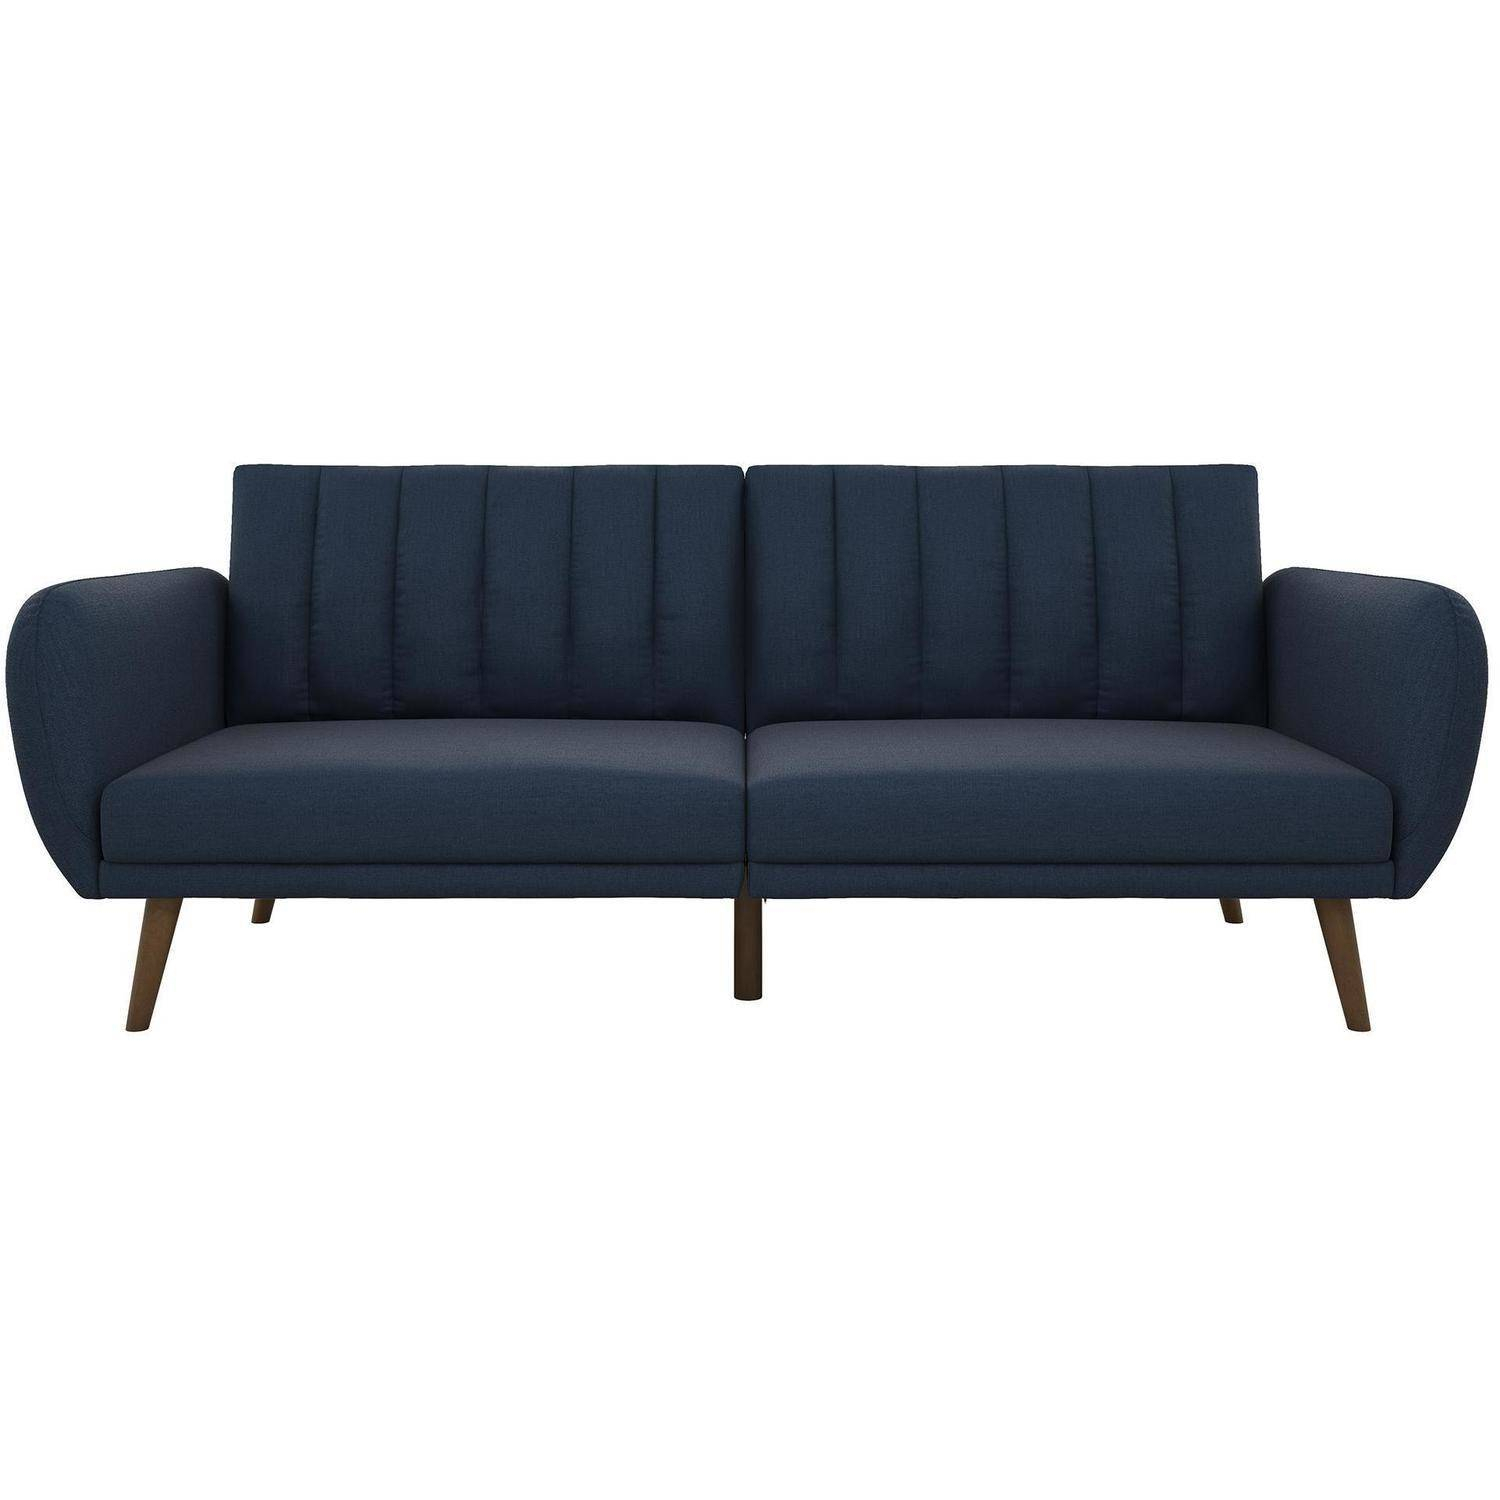 Novogratz Brittany Linen Futon Couch, Multiple Colors Throughout Brittany Sectional Futon Sofas (View 5 of 15)